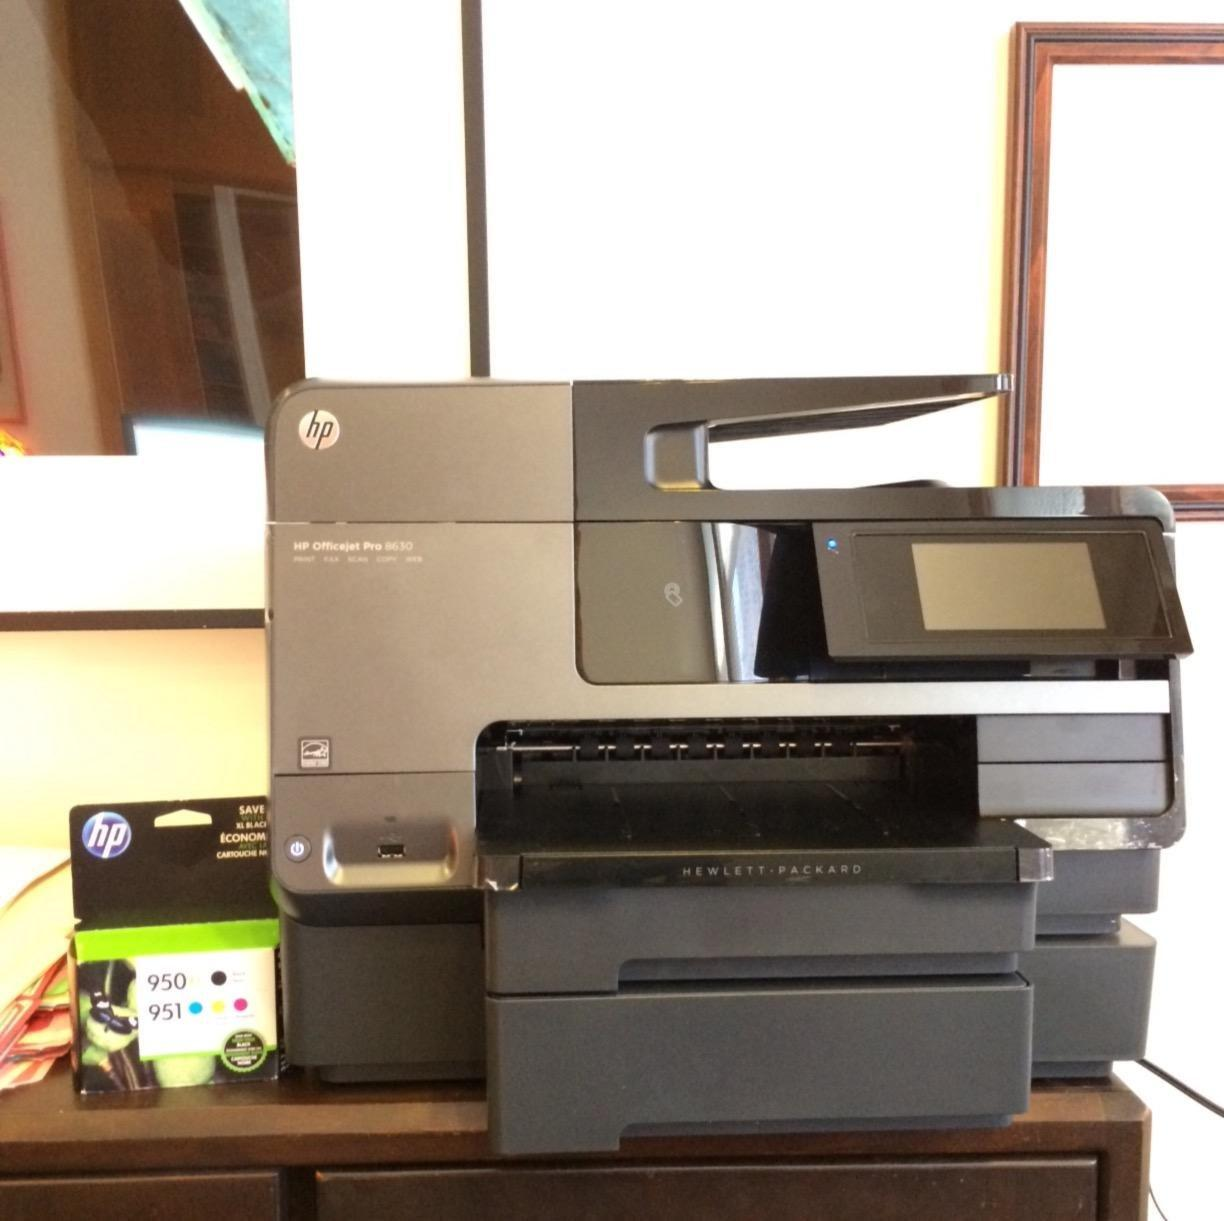 HP OfficeJet Pro 8630 All-in-One Wireless Printer with Mobile